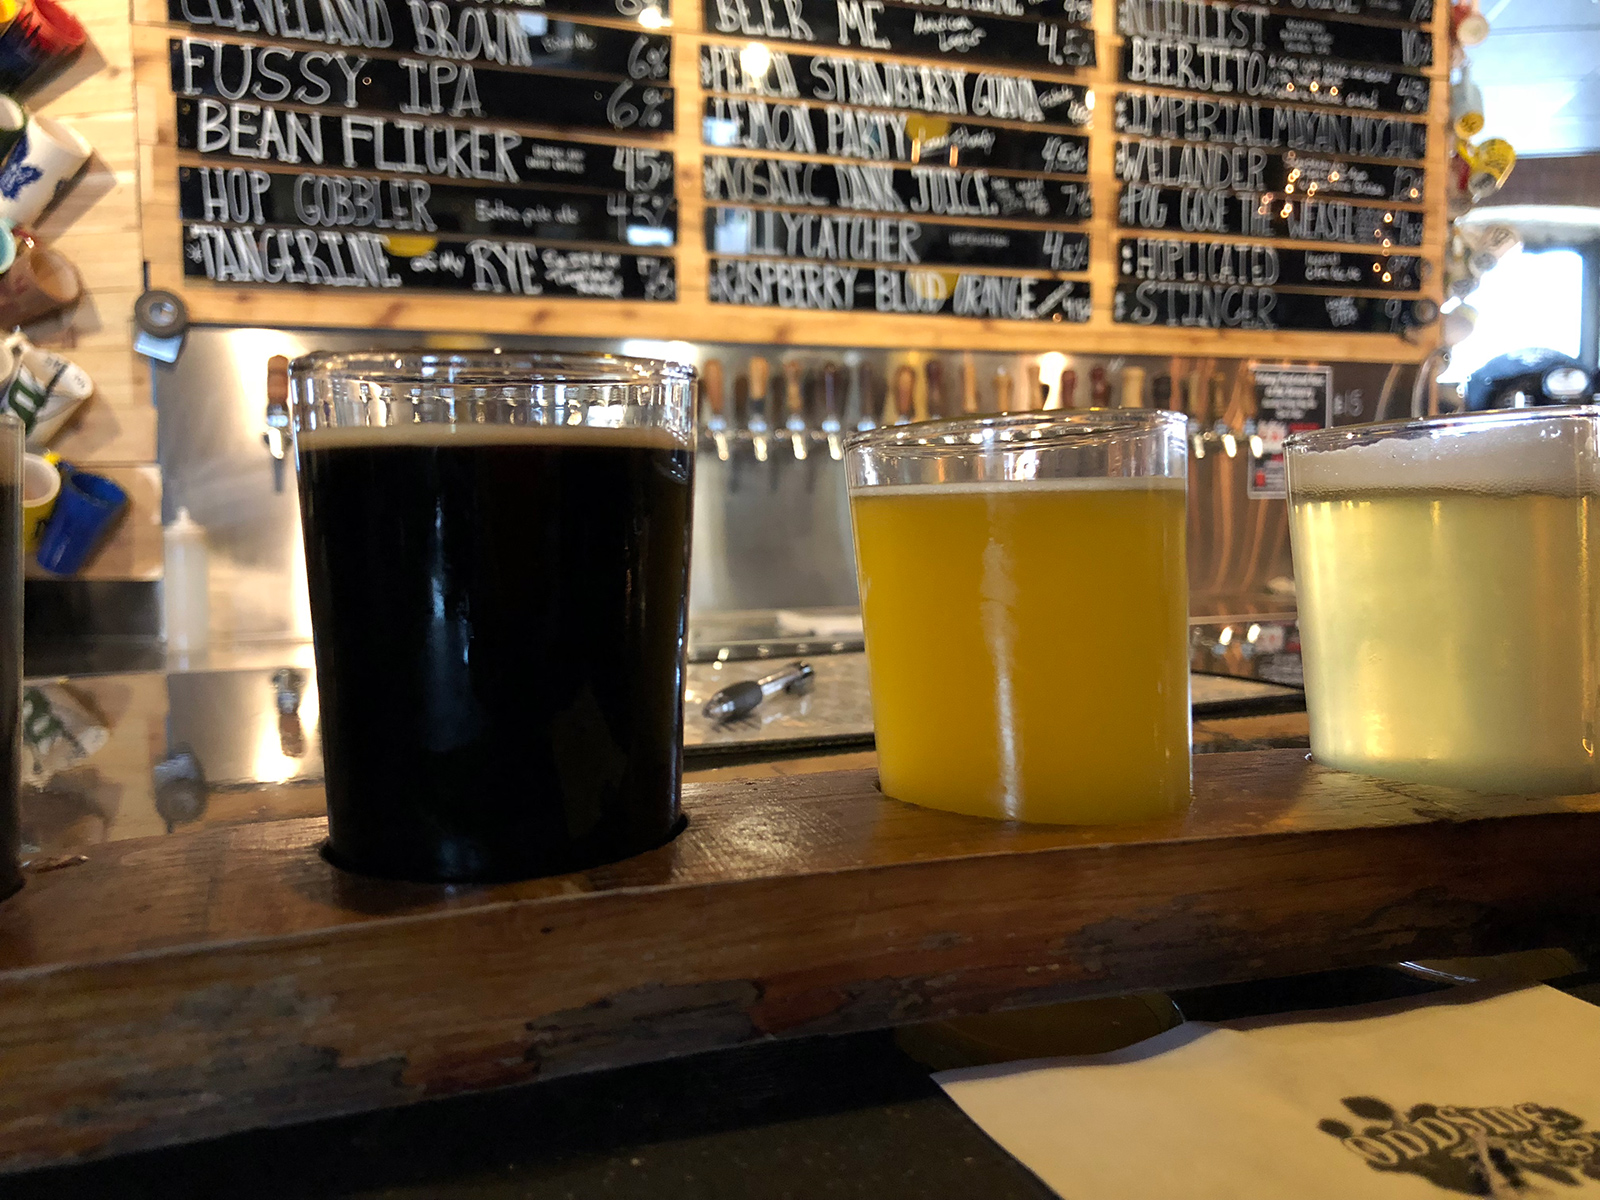 Odd Side Ales in Grand Haven, Michigan by Hopsmash / Jets Like Taxis